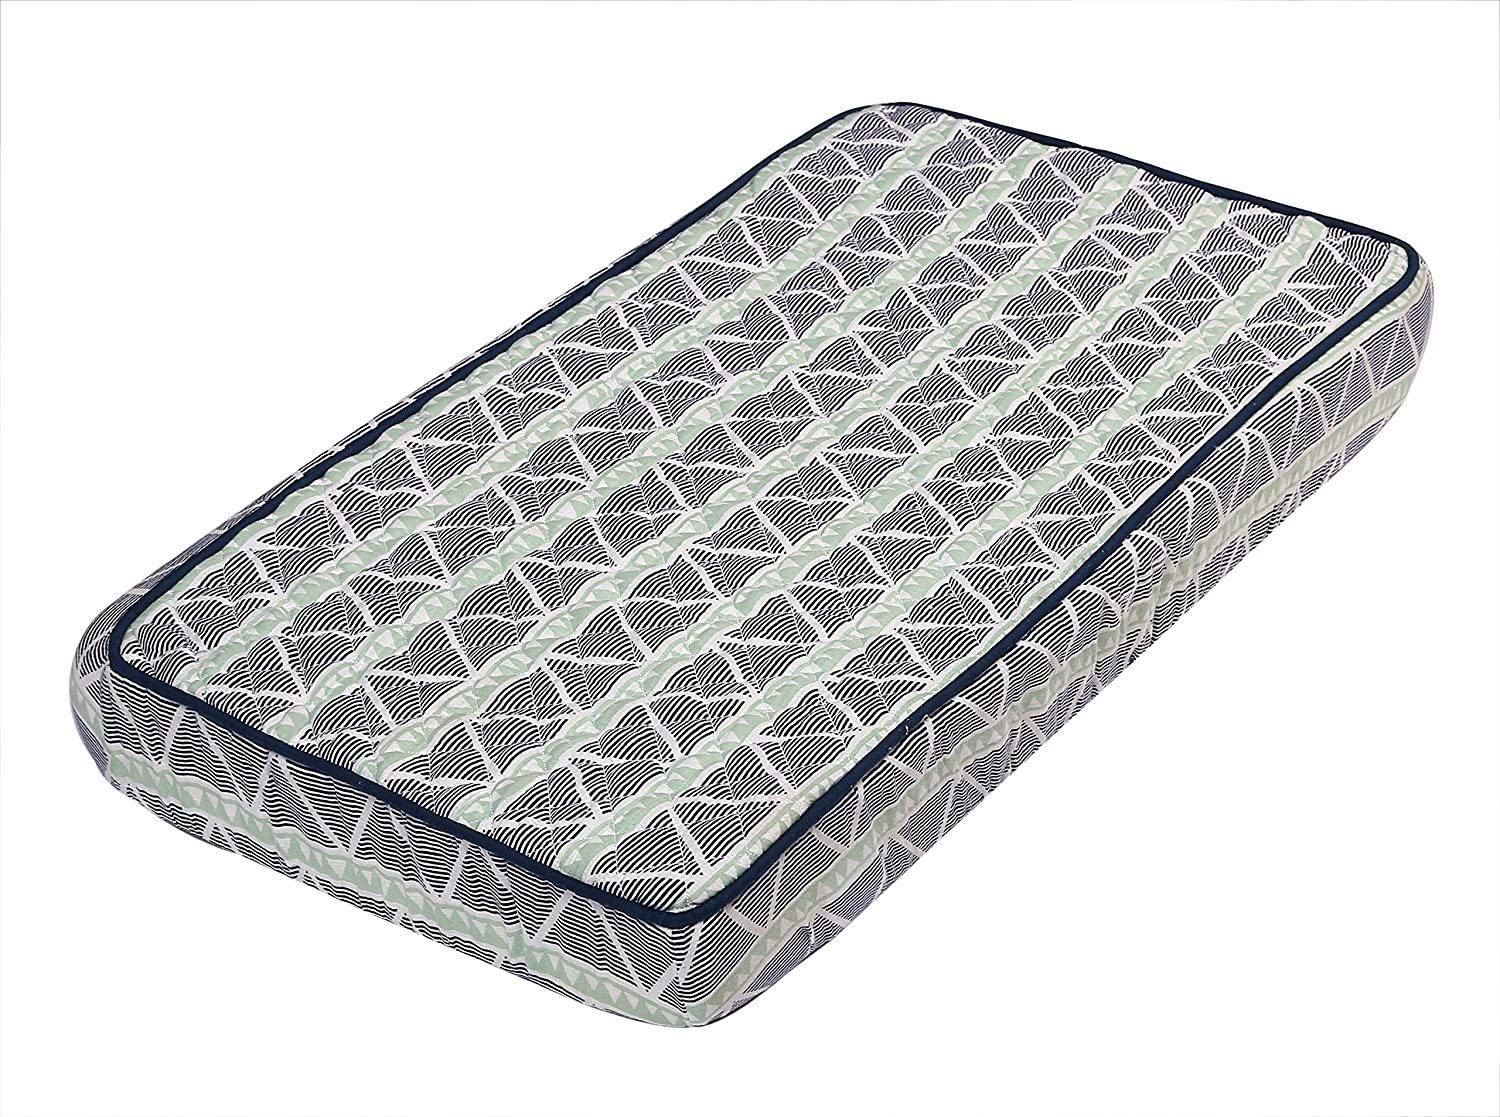 Bacati - Tribal/Aztec Muslin Quilted Changing Pad Cover (Large Triangles, Mint/Navy)